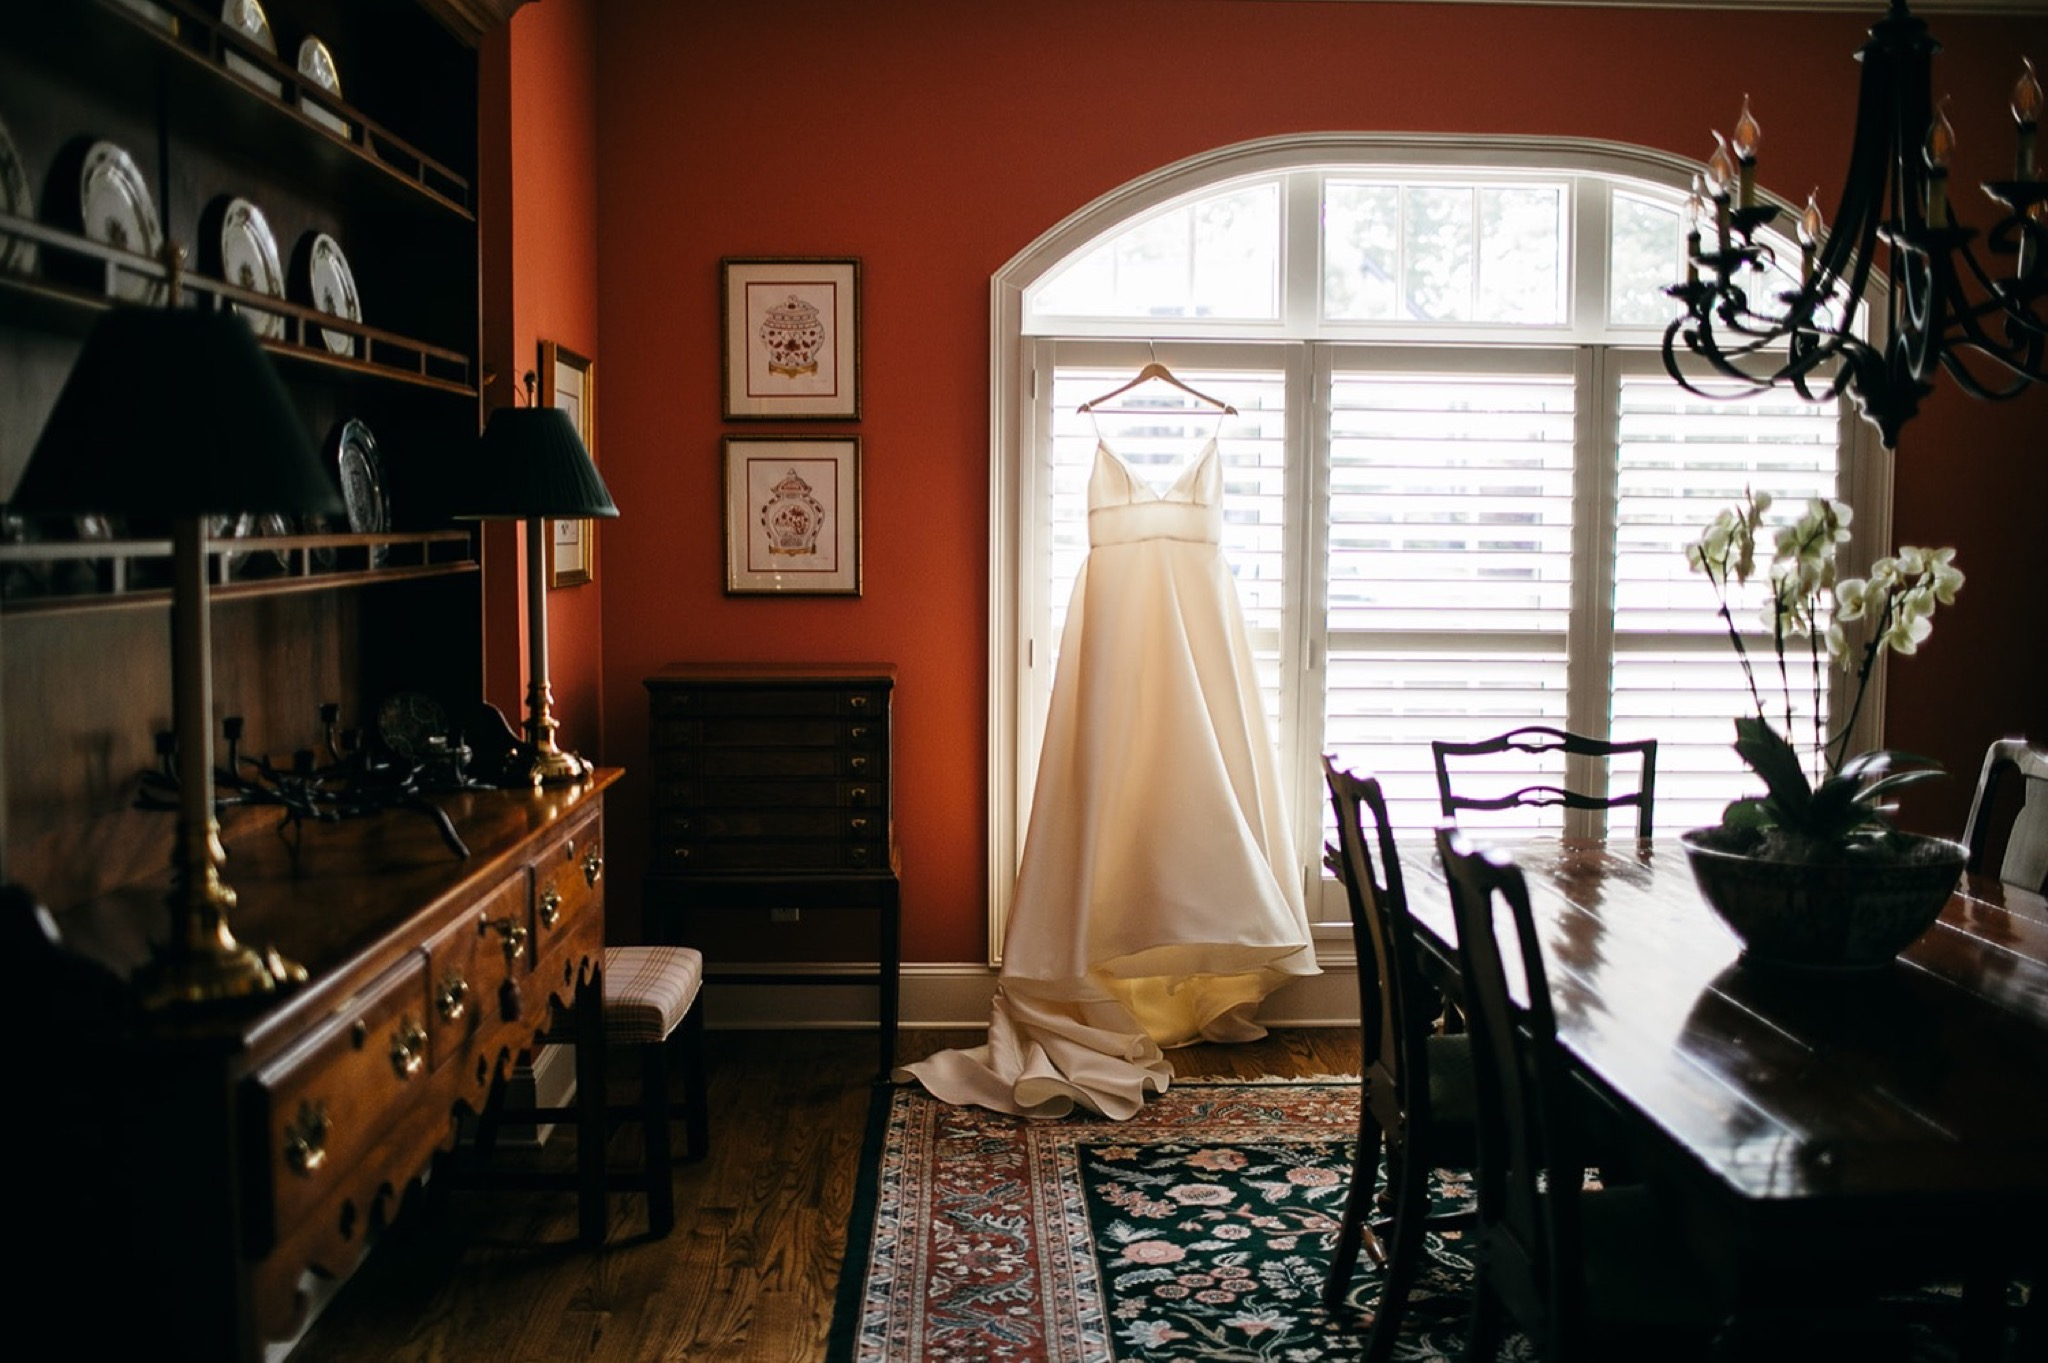 wedding dress hangs in a large window with train puddling on wood floor.